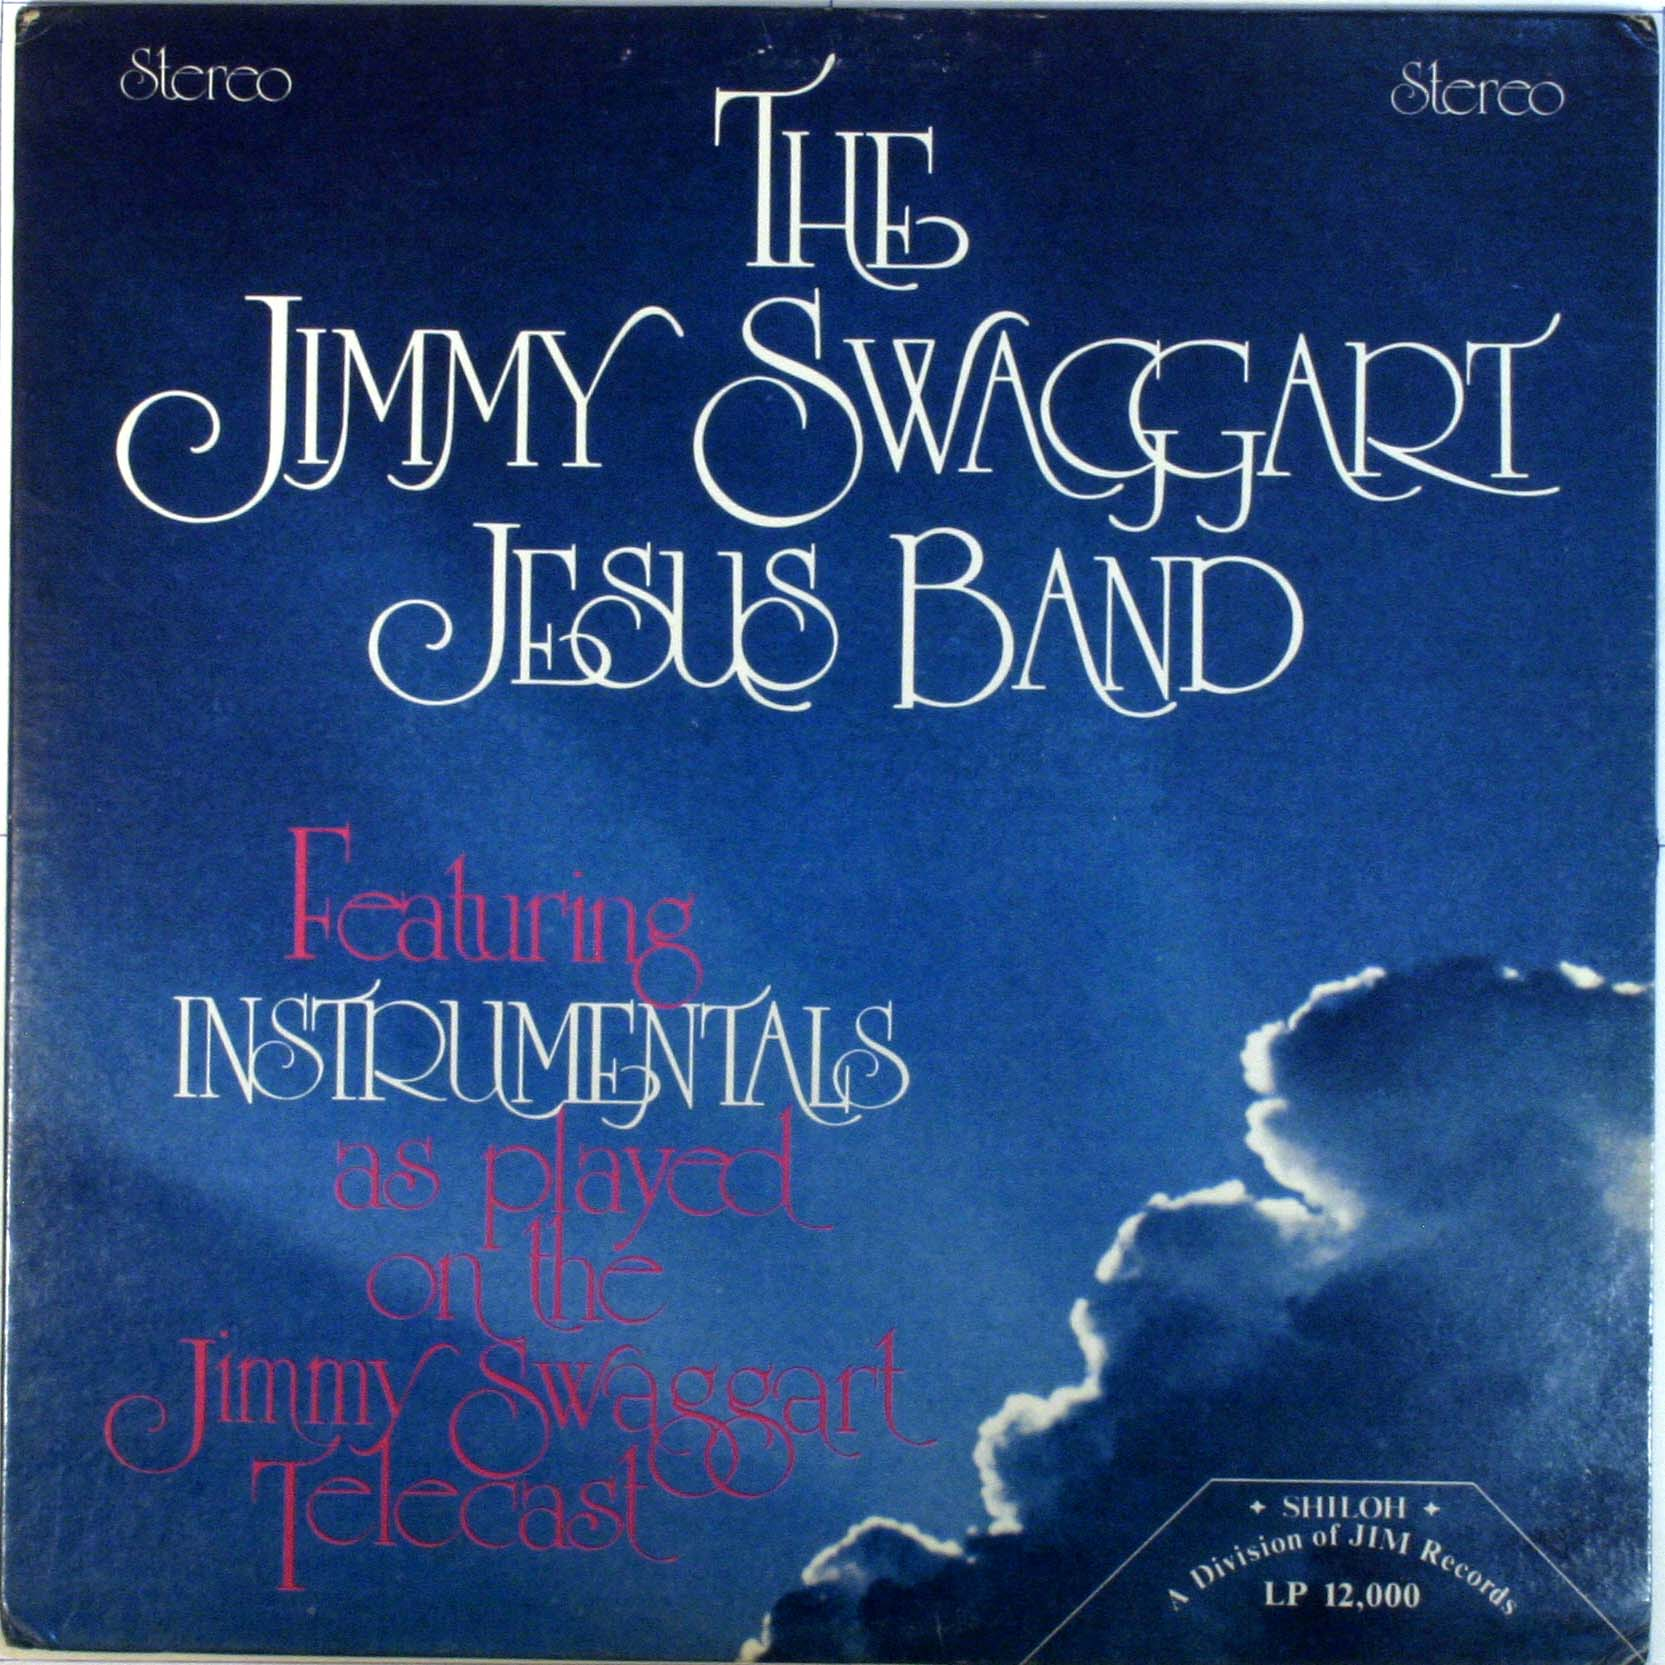 The Jimmy Swaggart Jesus Band